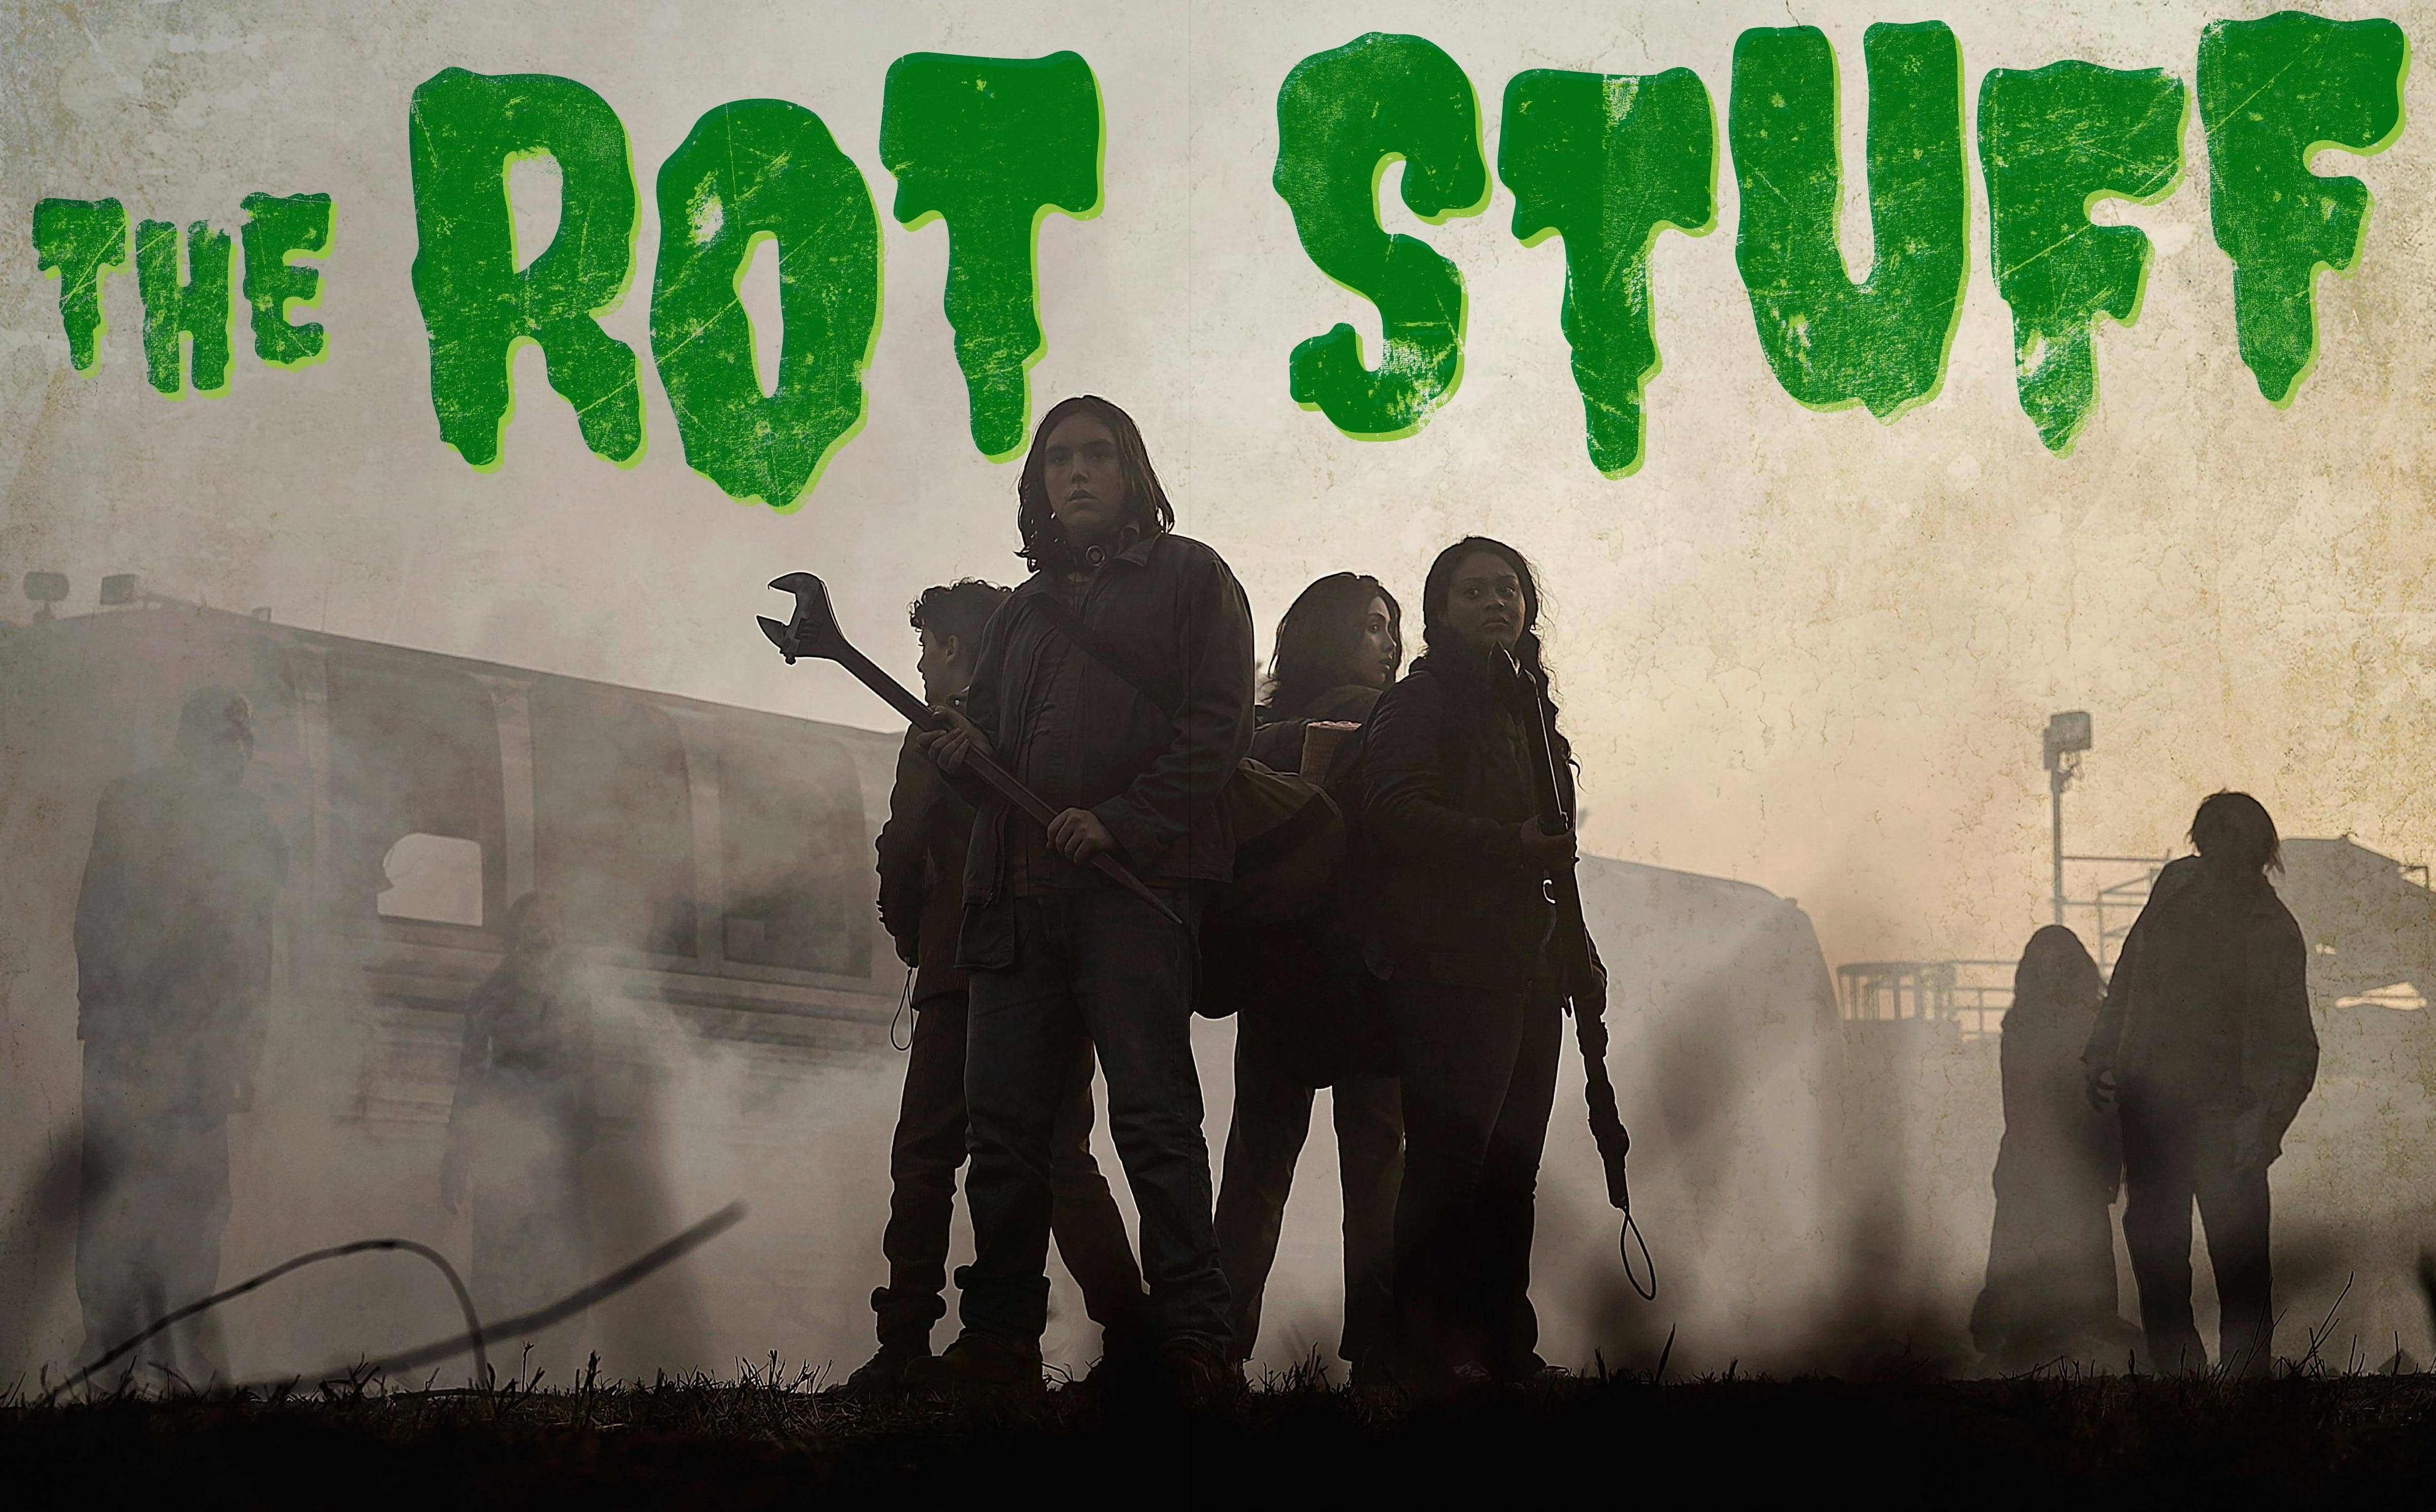 THE ROT STUFF